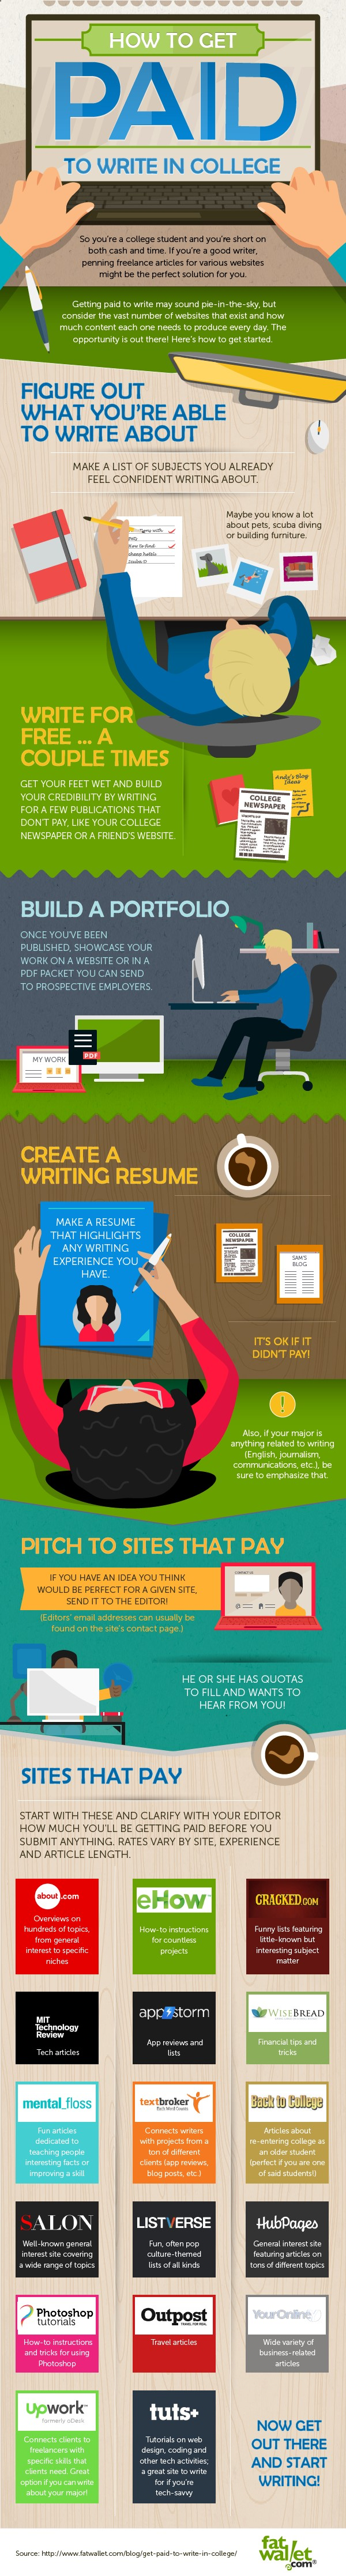 how to get paid to write in college writing online jobs